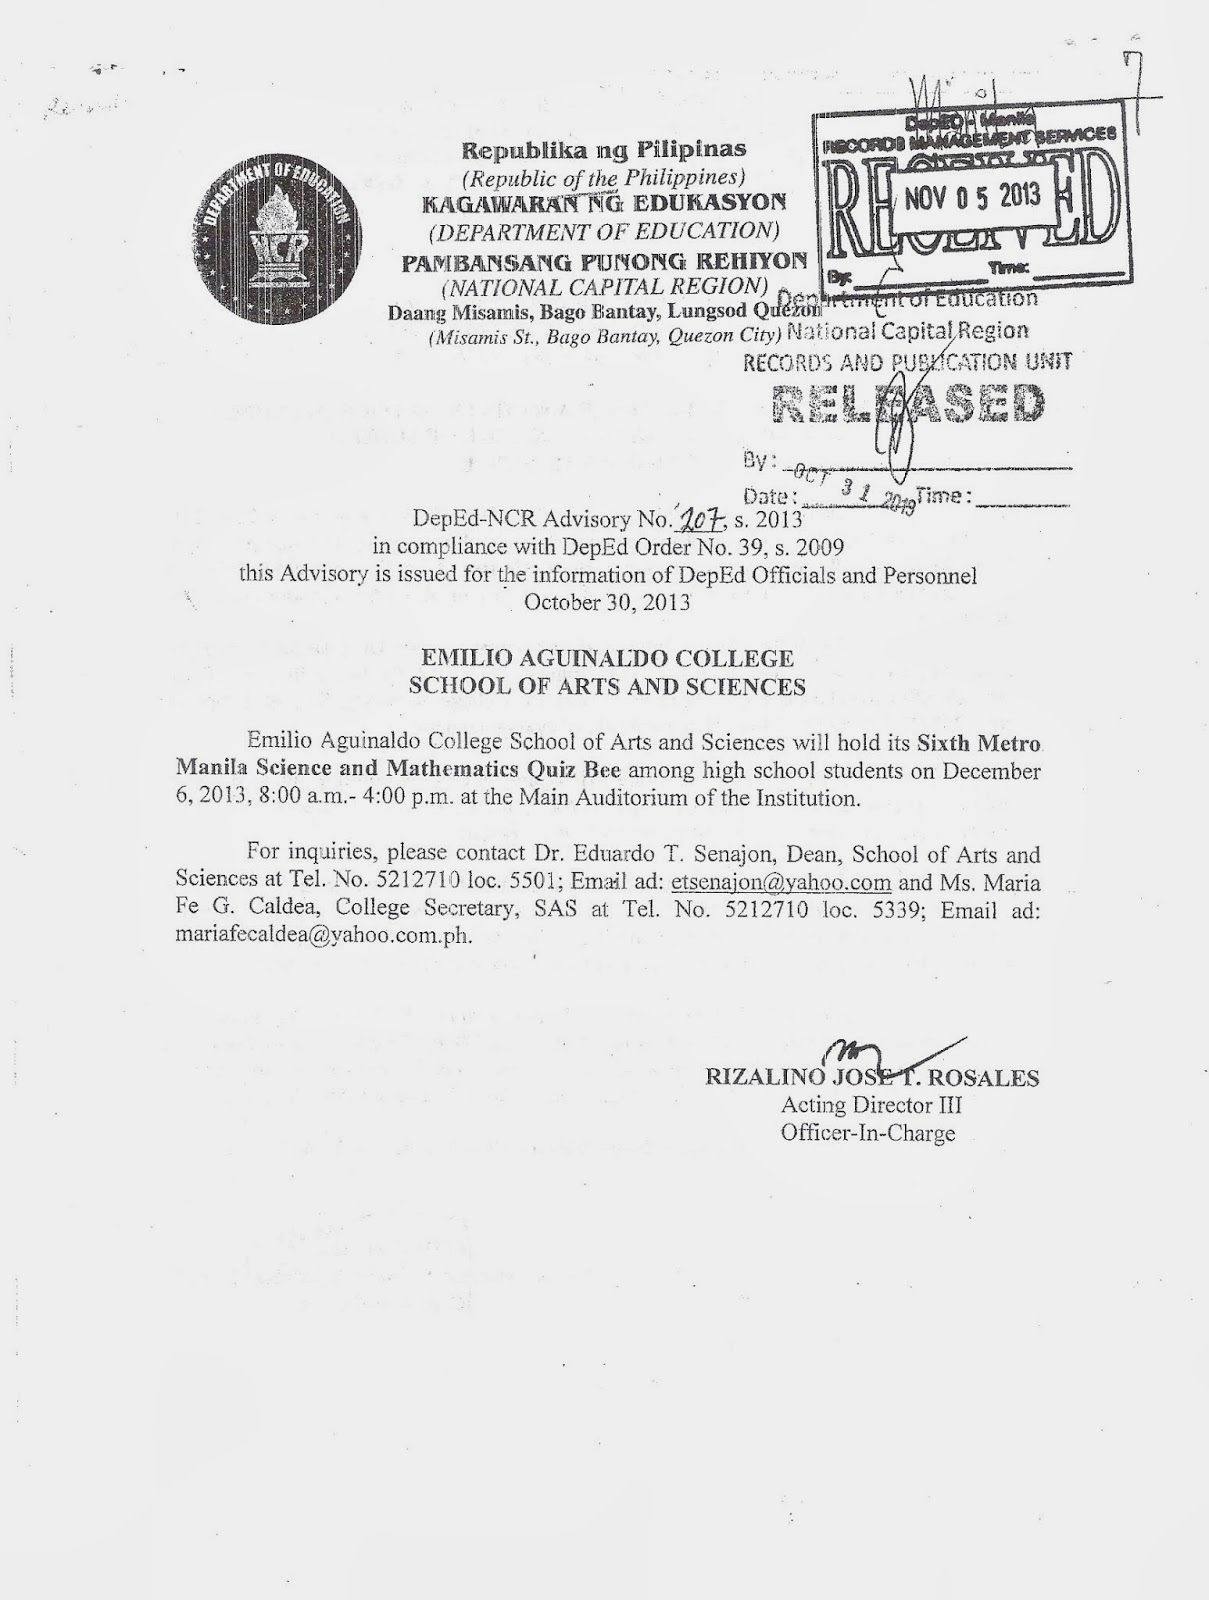 Department of Education Manila: Division Advisory No. 139